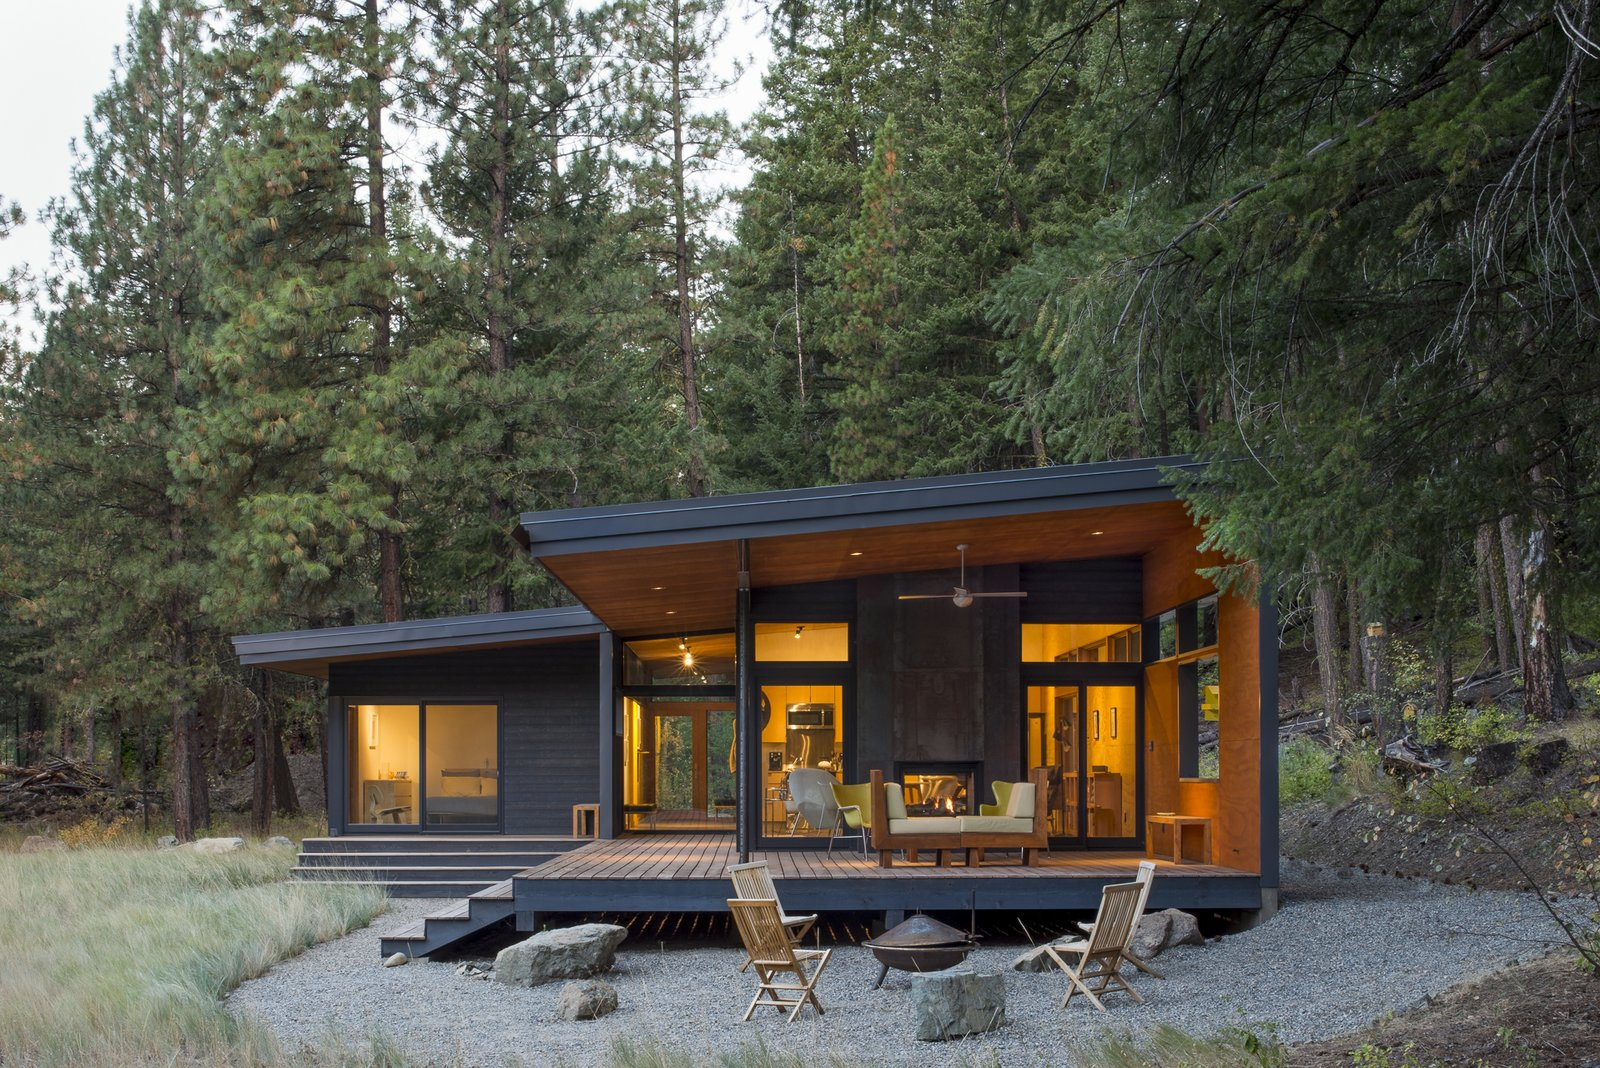 Large Windows and Glazed Doors Let This Modern Cabin Mingle With Nature